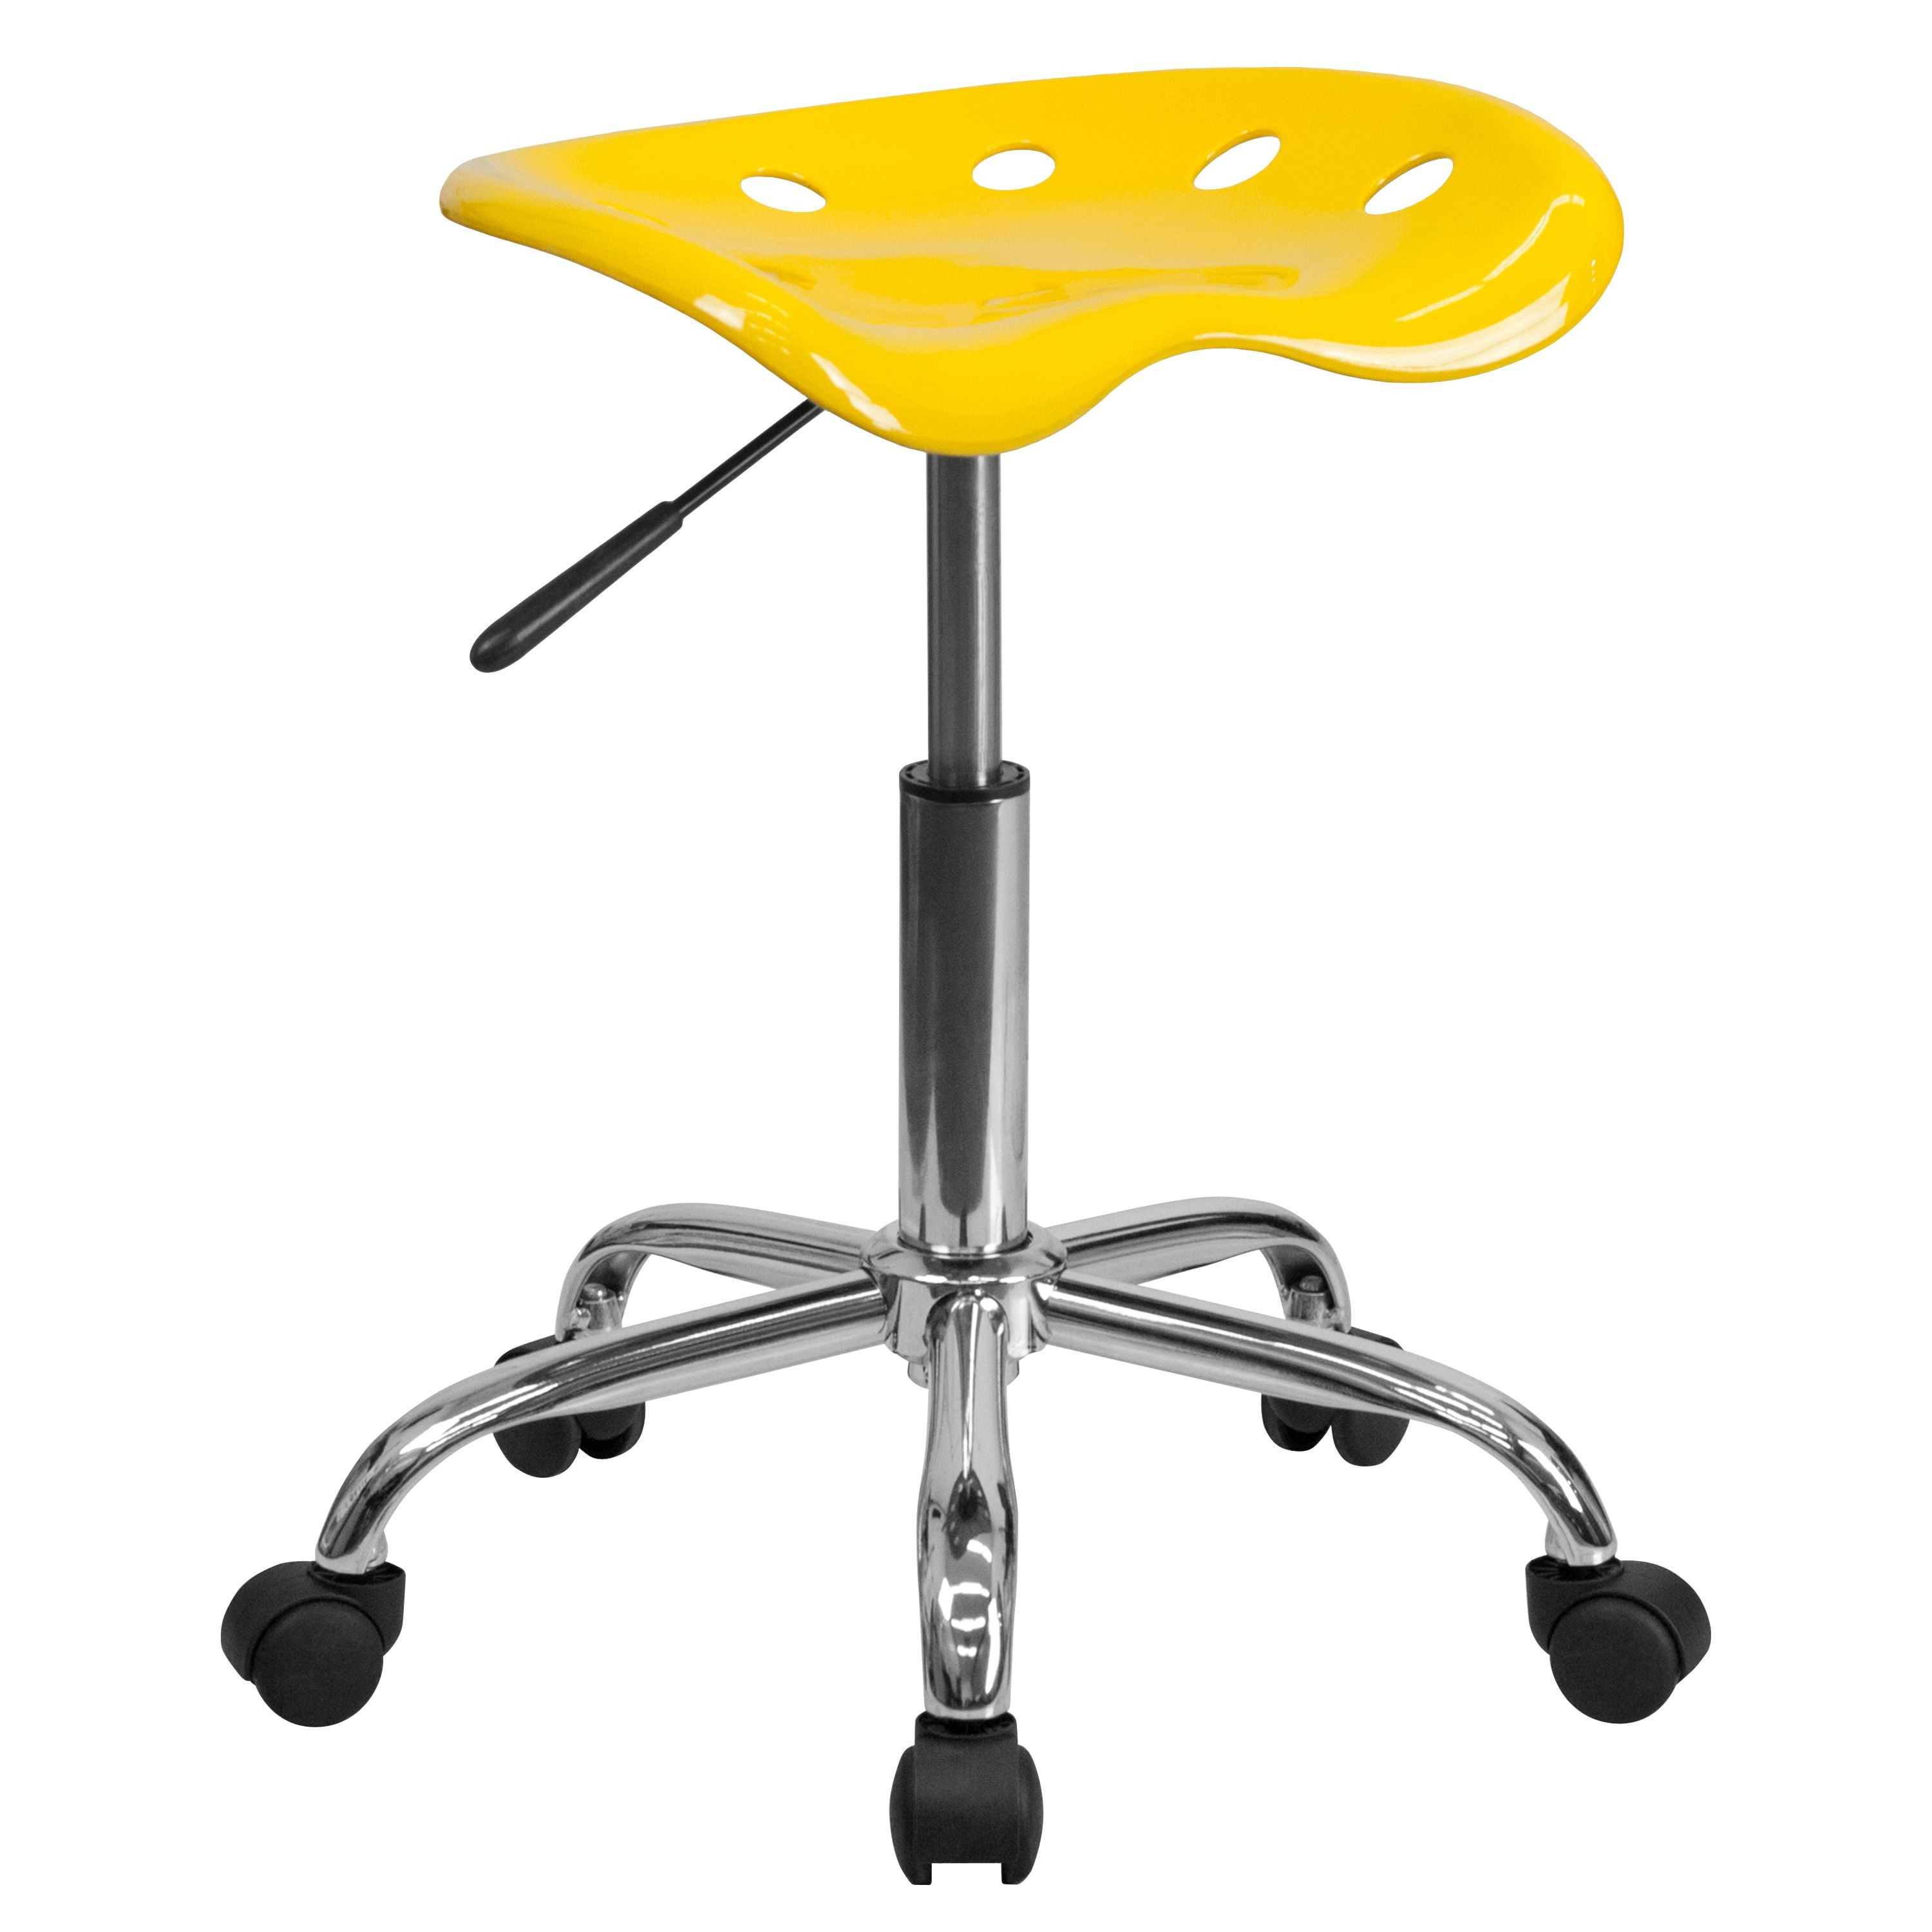 Flash Furniture LF-214A-YELLOW-GG Vibrant Yellow Tractor Seat and Chrome Stool